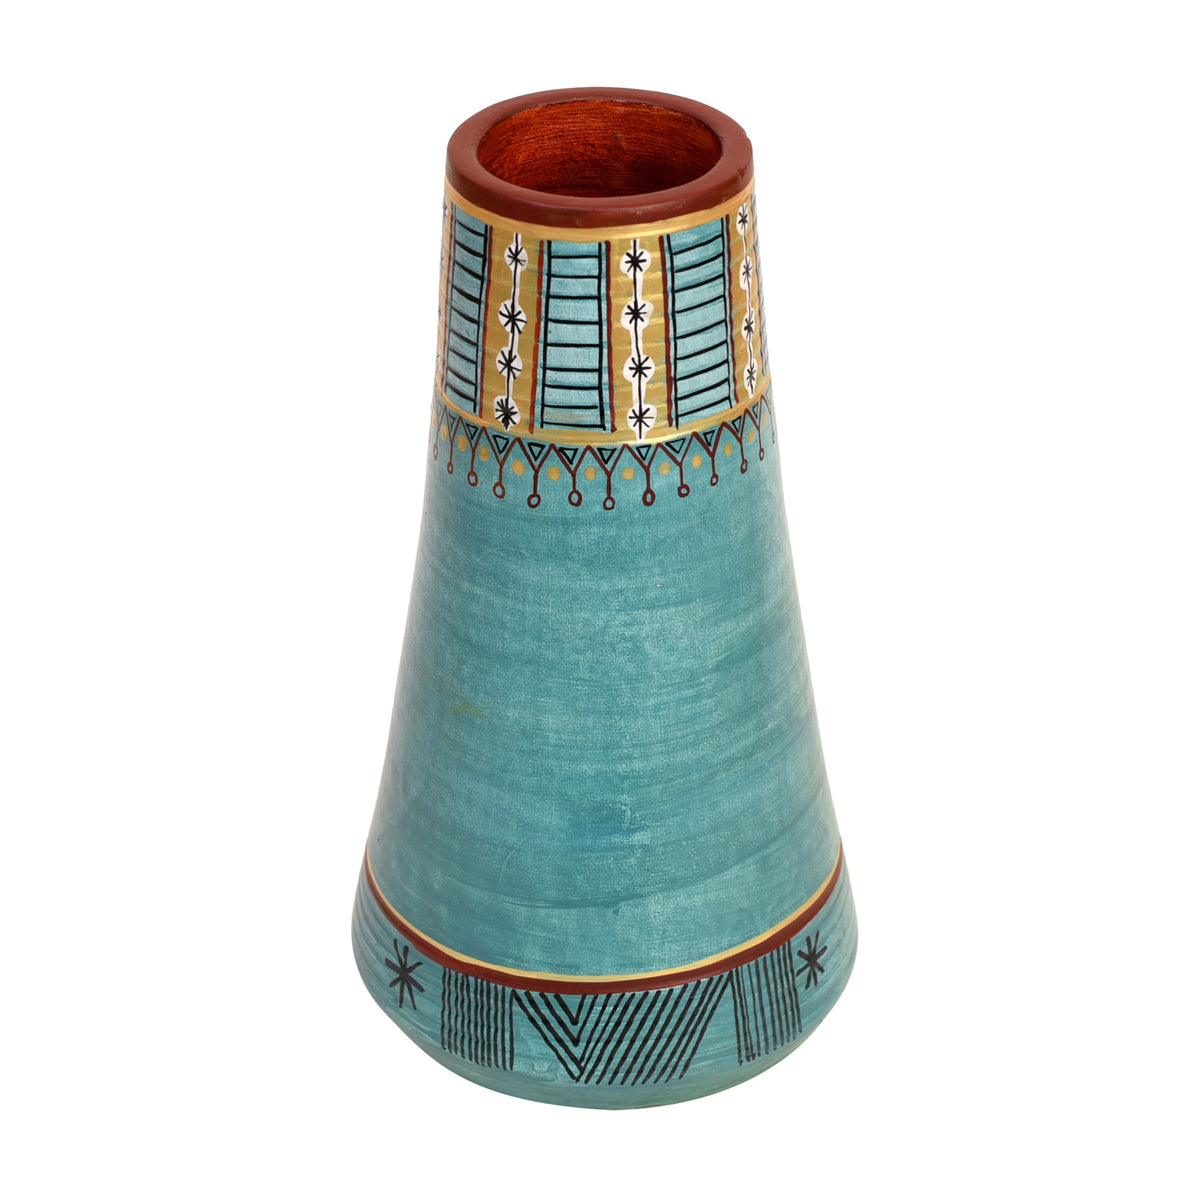 Turquoise Blue Conical Vase (9x5.2 inches Dia)